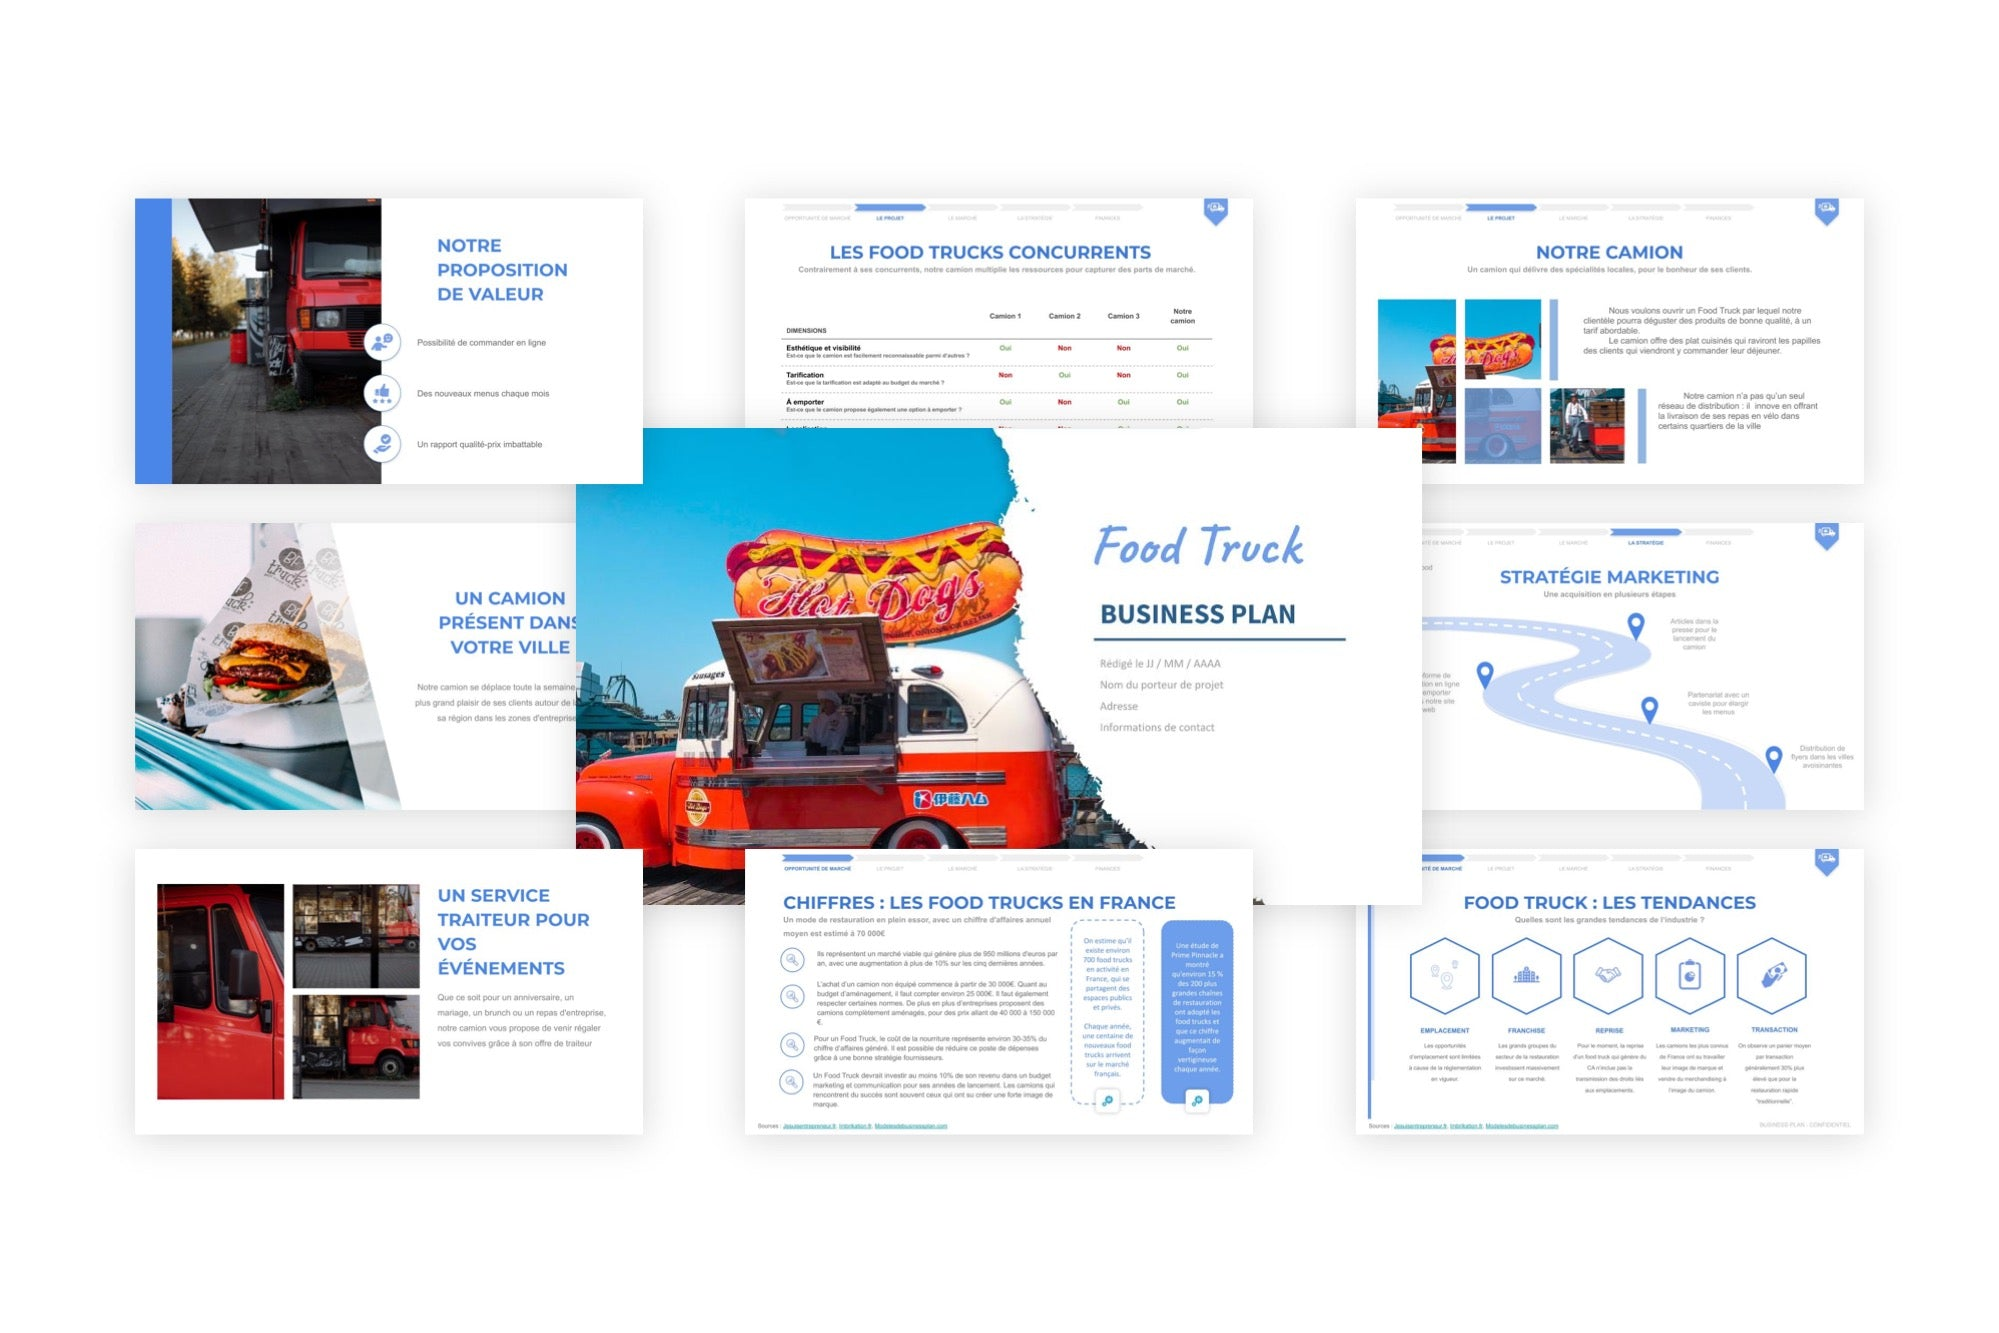 Food Truck Business Plan modele